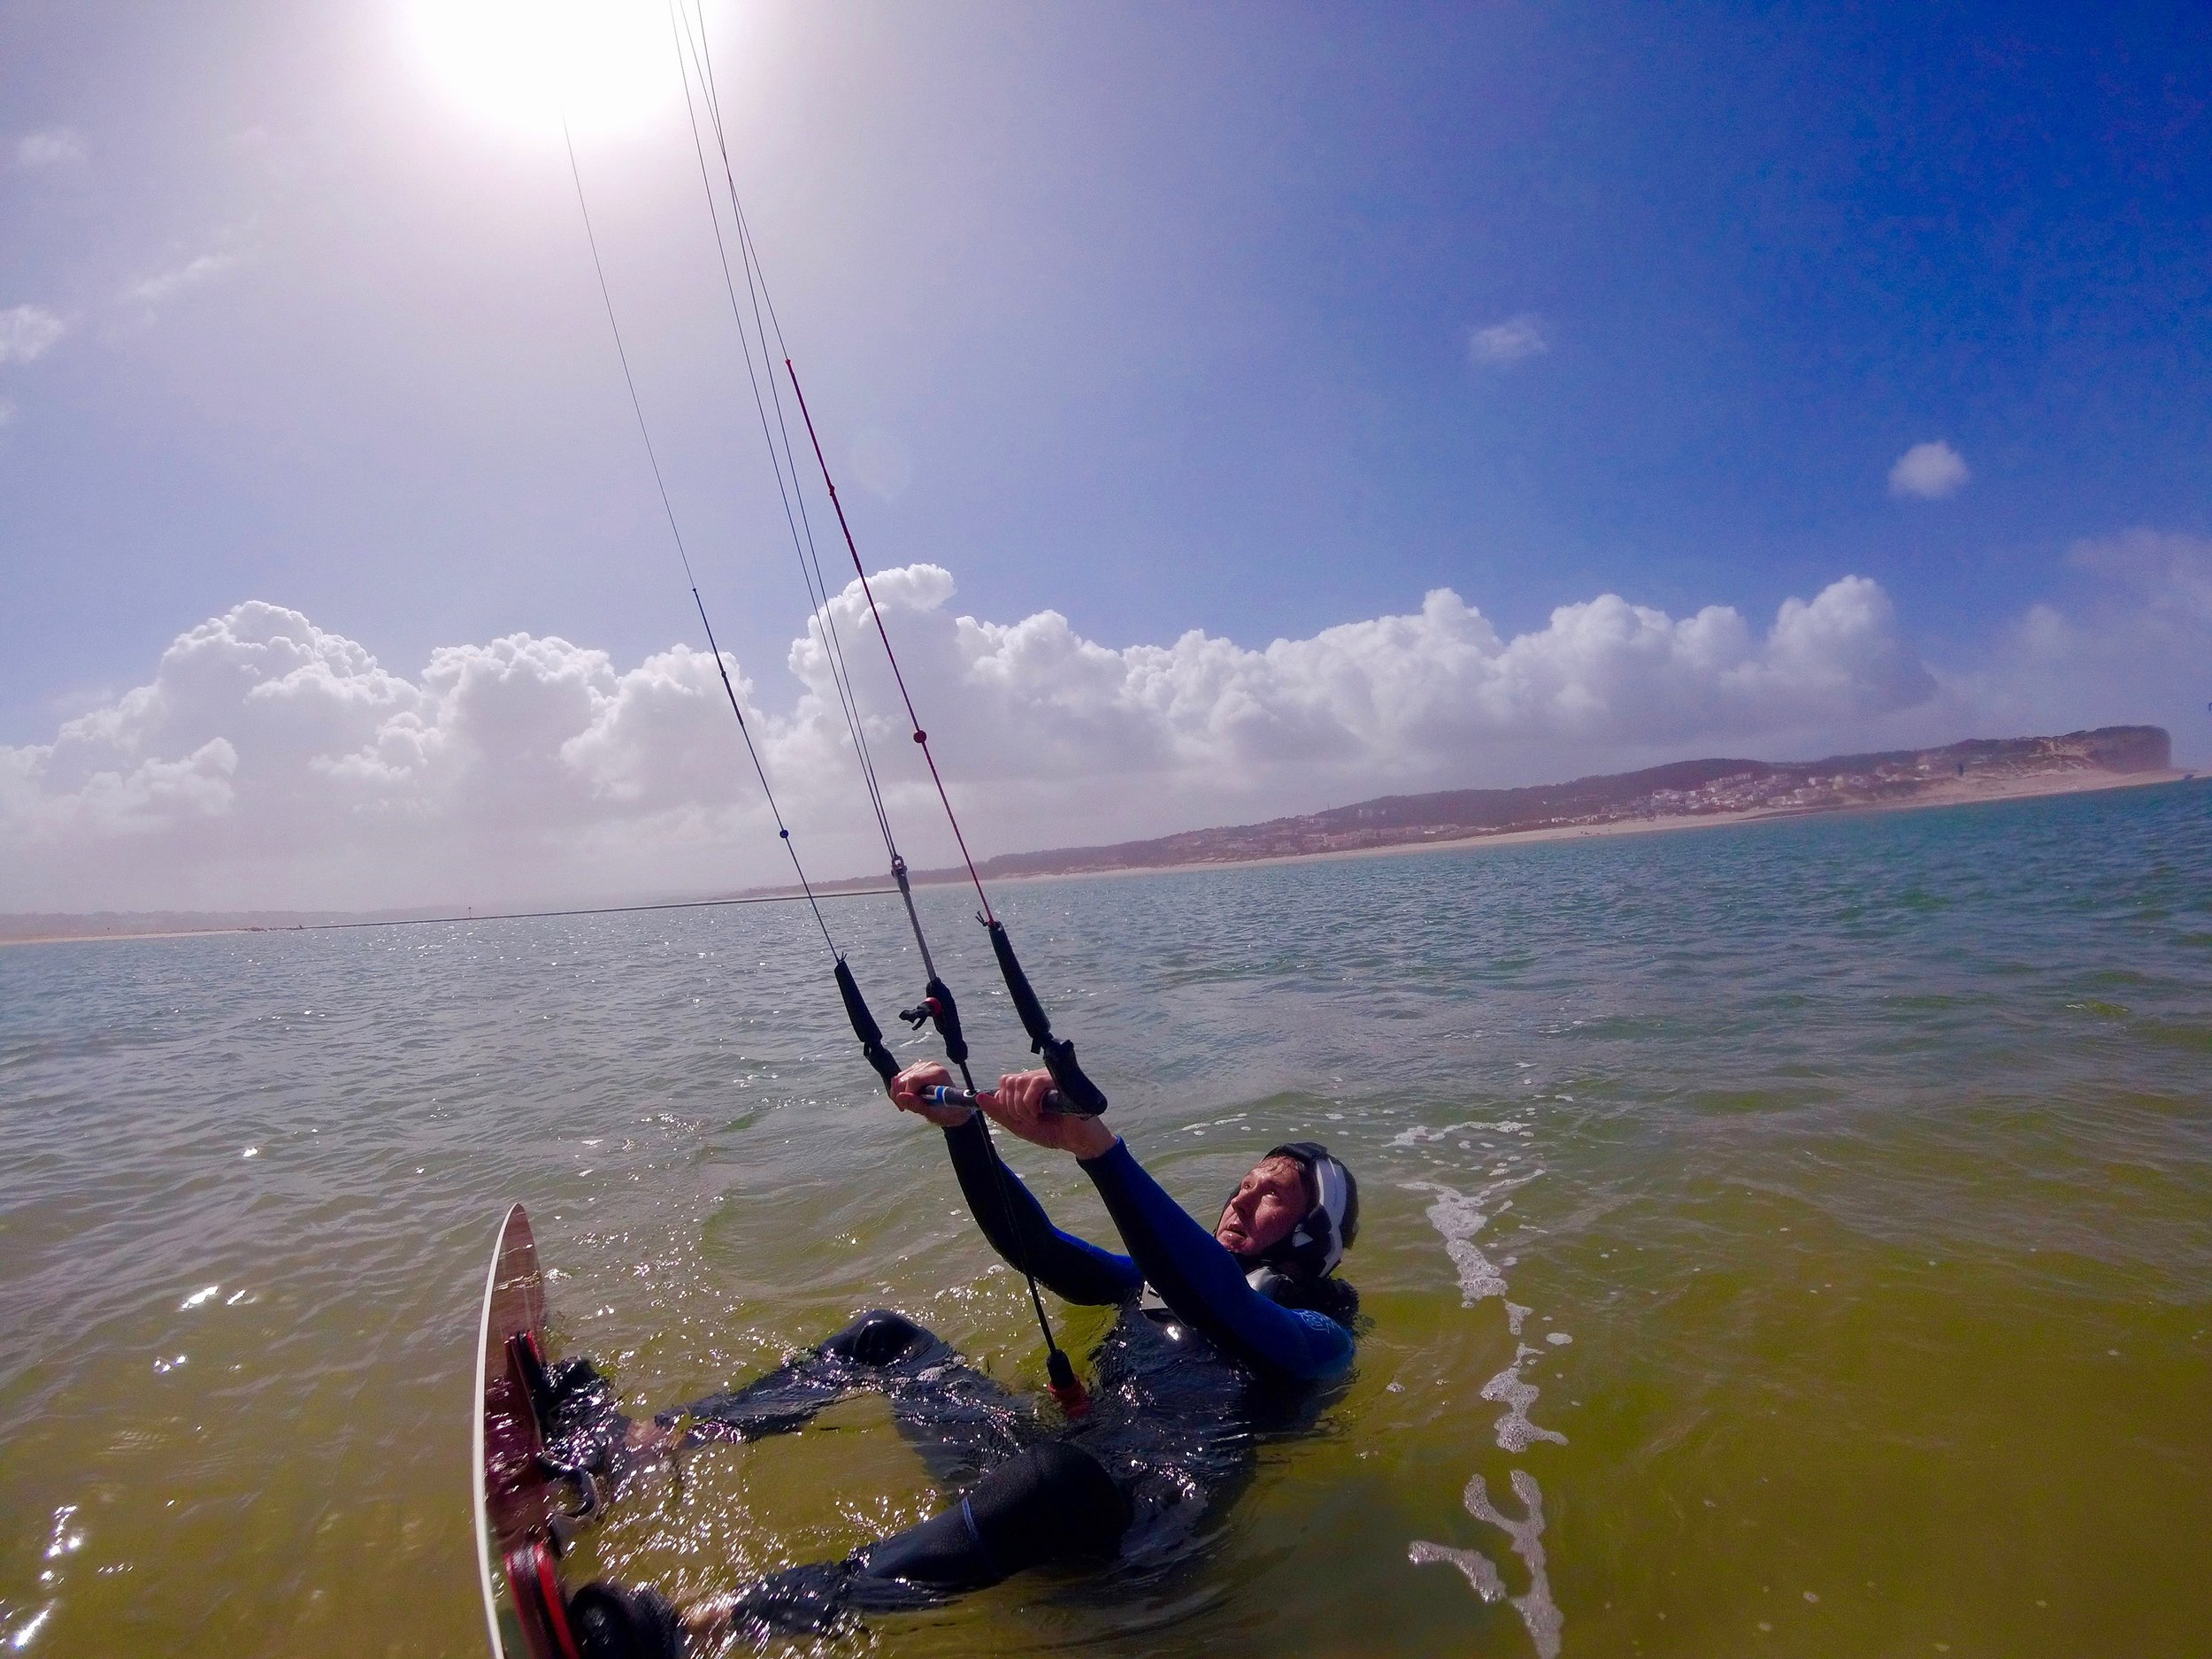 Water start kitesurfing.jpg